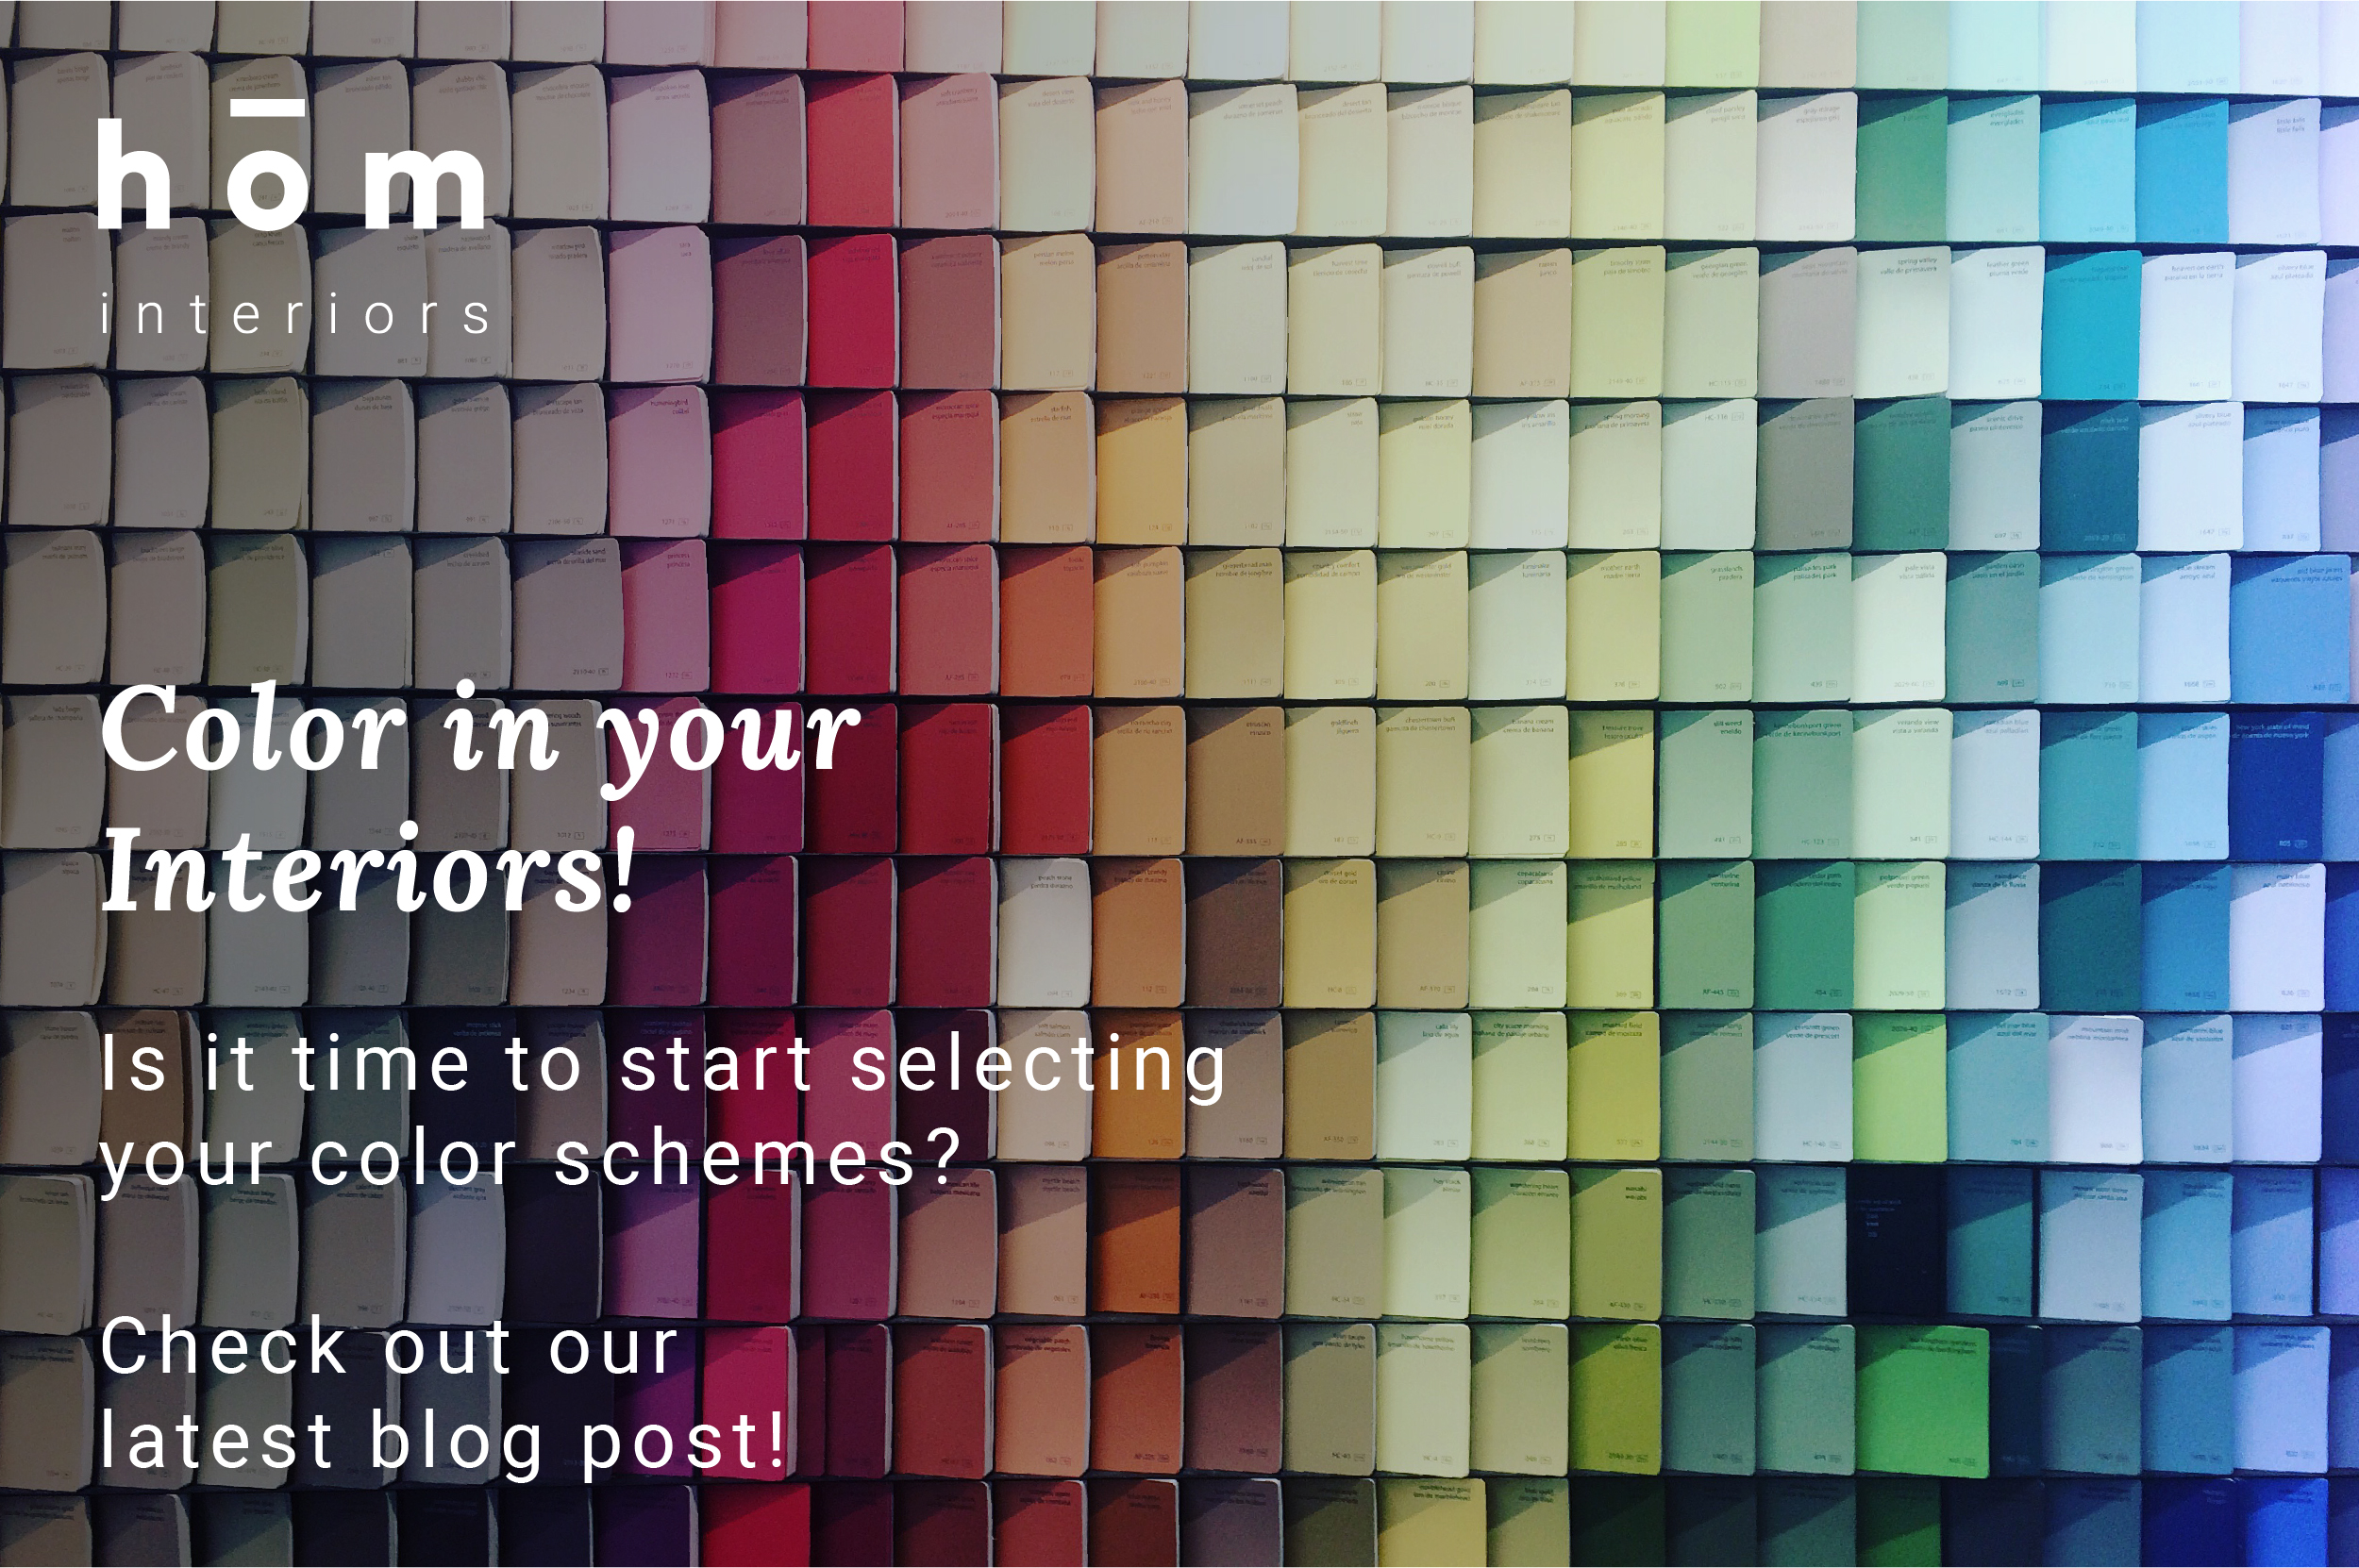 Color theory in Interior Design - interior design services and materials at hom interiors Kuwait - www.homkw.com